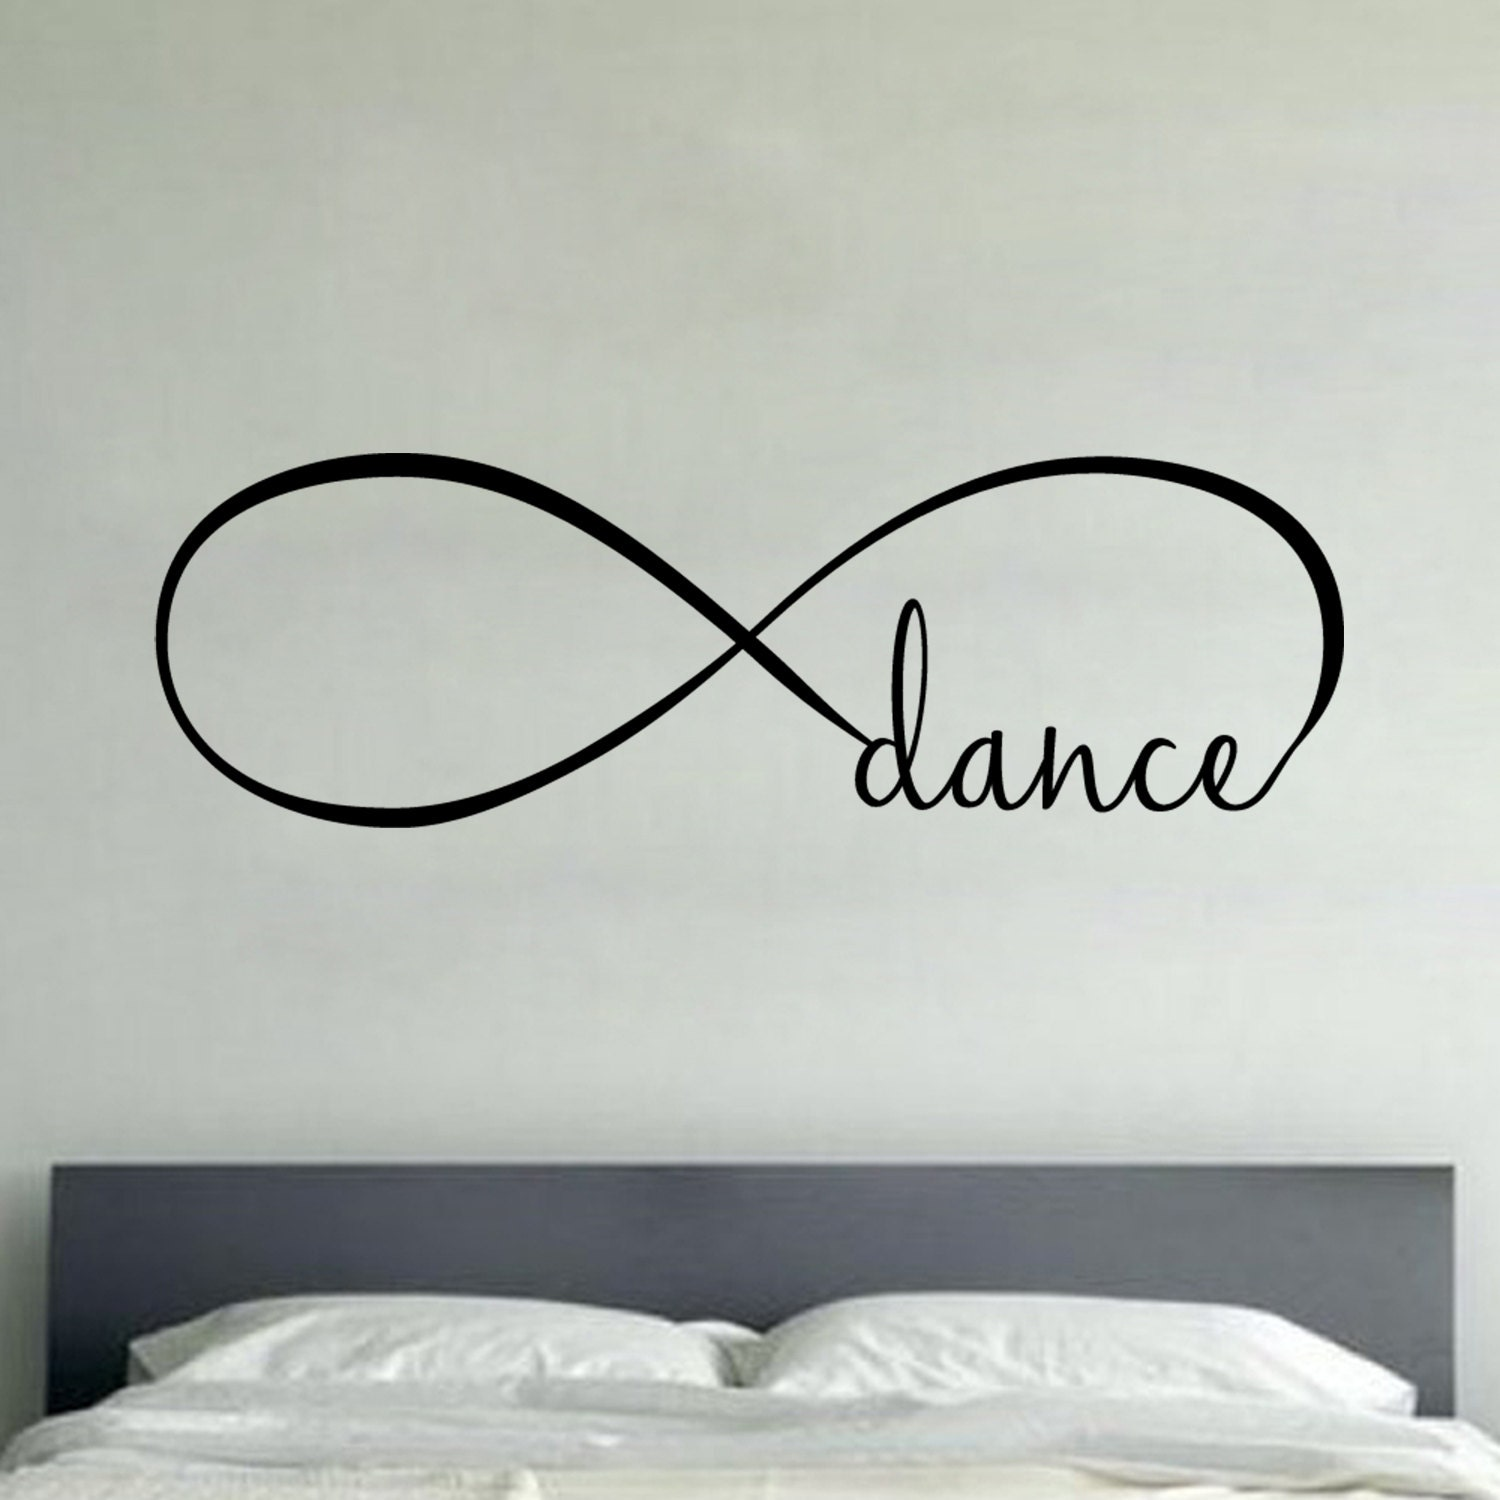 Dance wall vinyl decal sticker family kids room zoom biocorpaavc Gallery